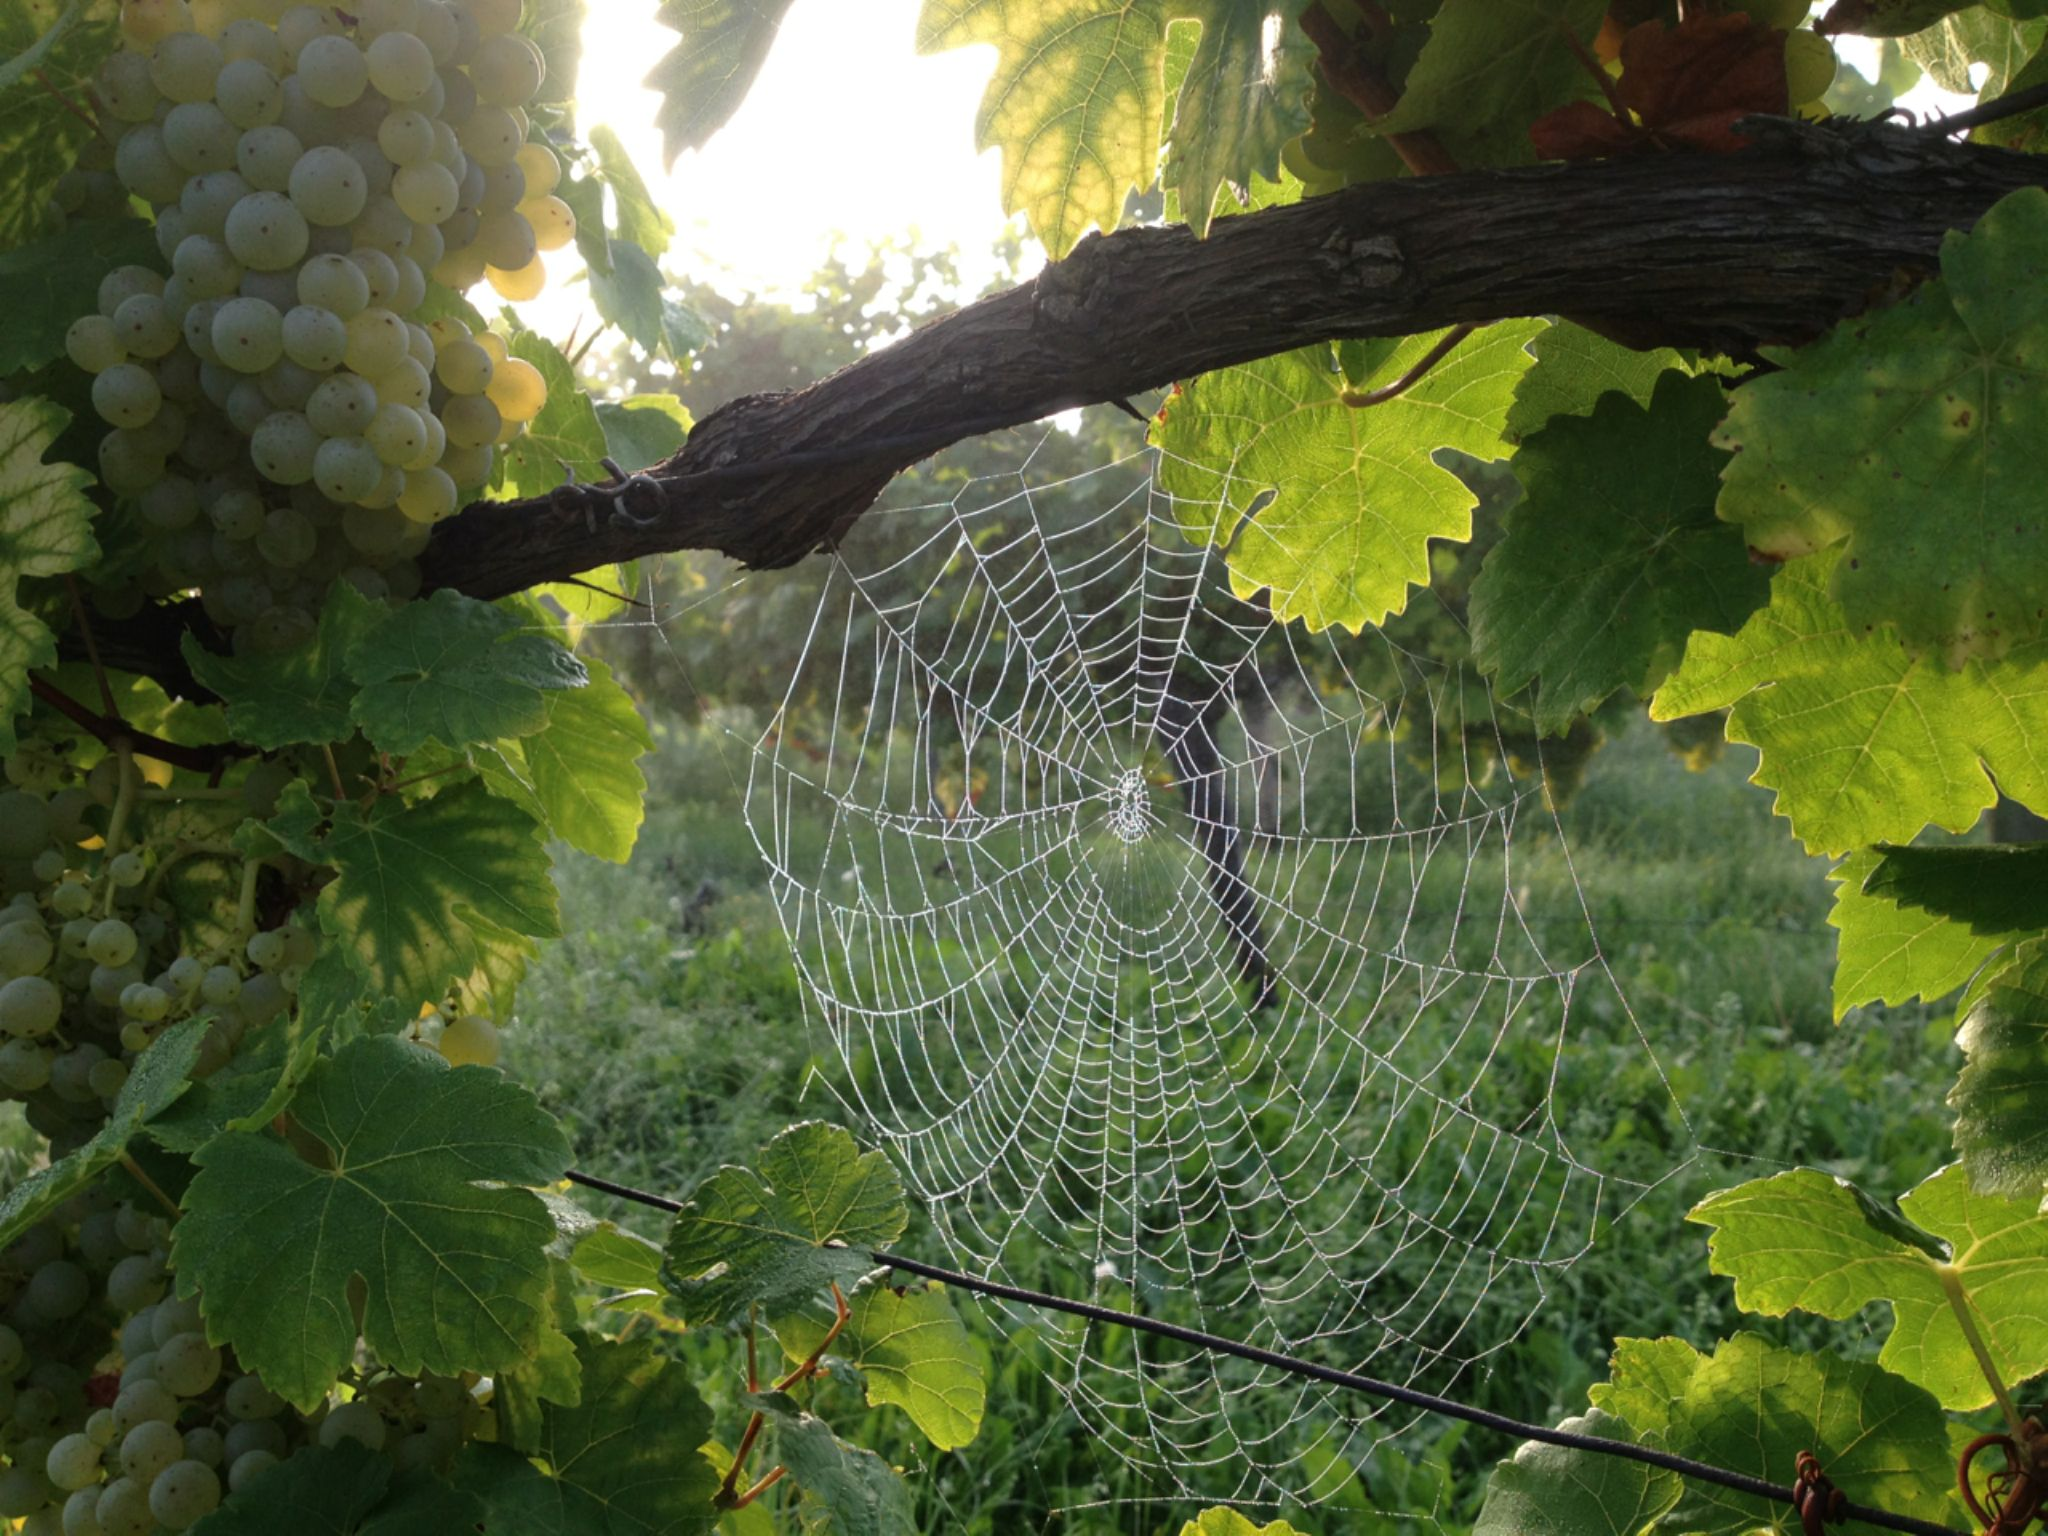 Spider-Pearly-Weather by Katy Haecker